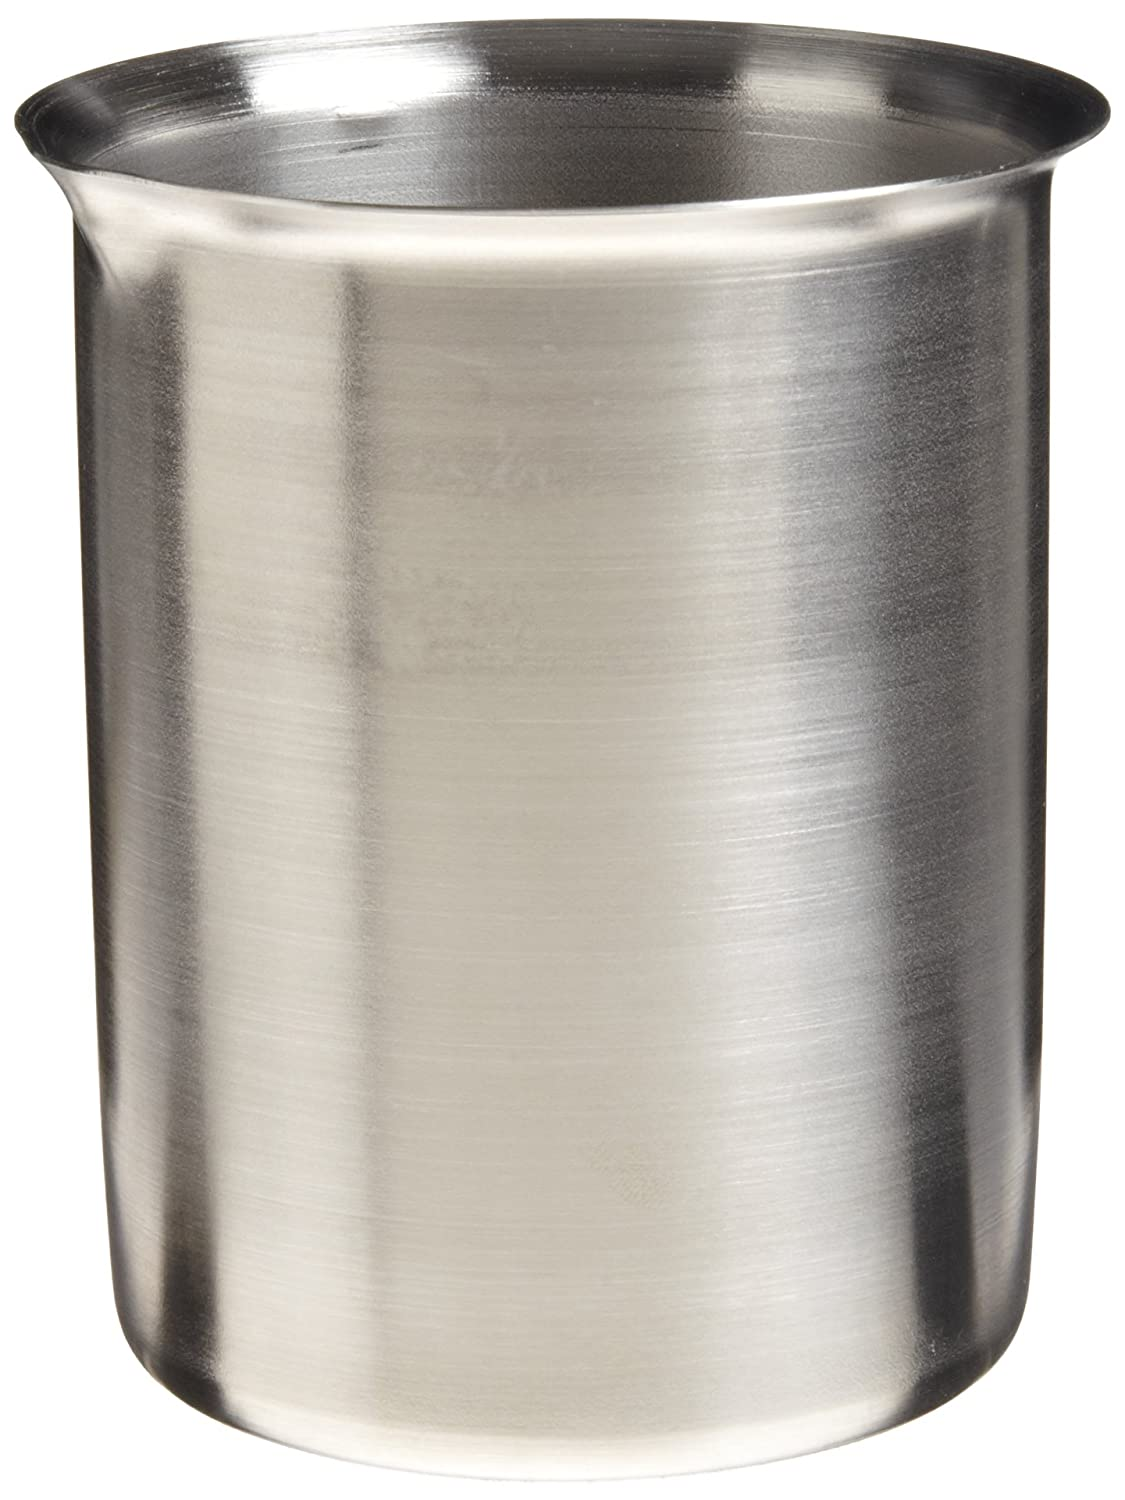 Polar Ware 600B Stainless Steel Griffin Style Beaker, 600 mL Capacity, 3-3/8' OD x 4-5/8' H 3-3/8 OD x 4-5/8 H 1526Q40EA